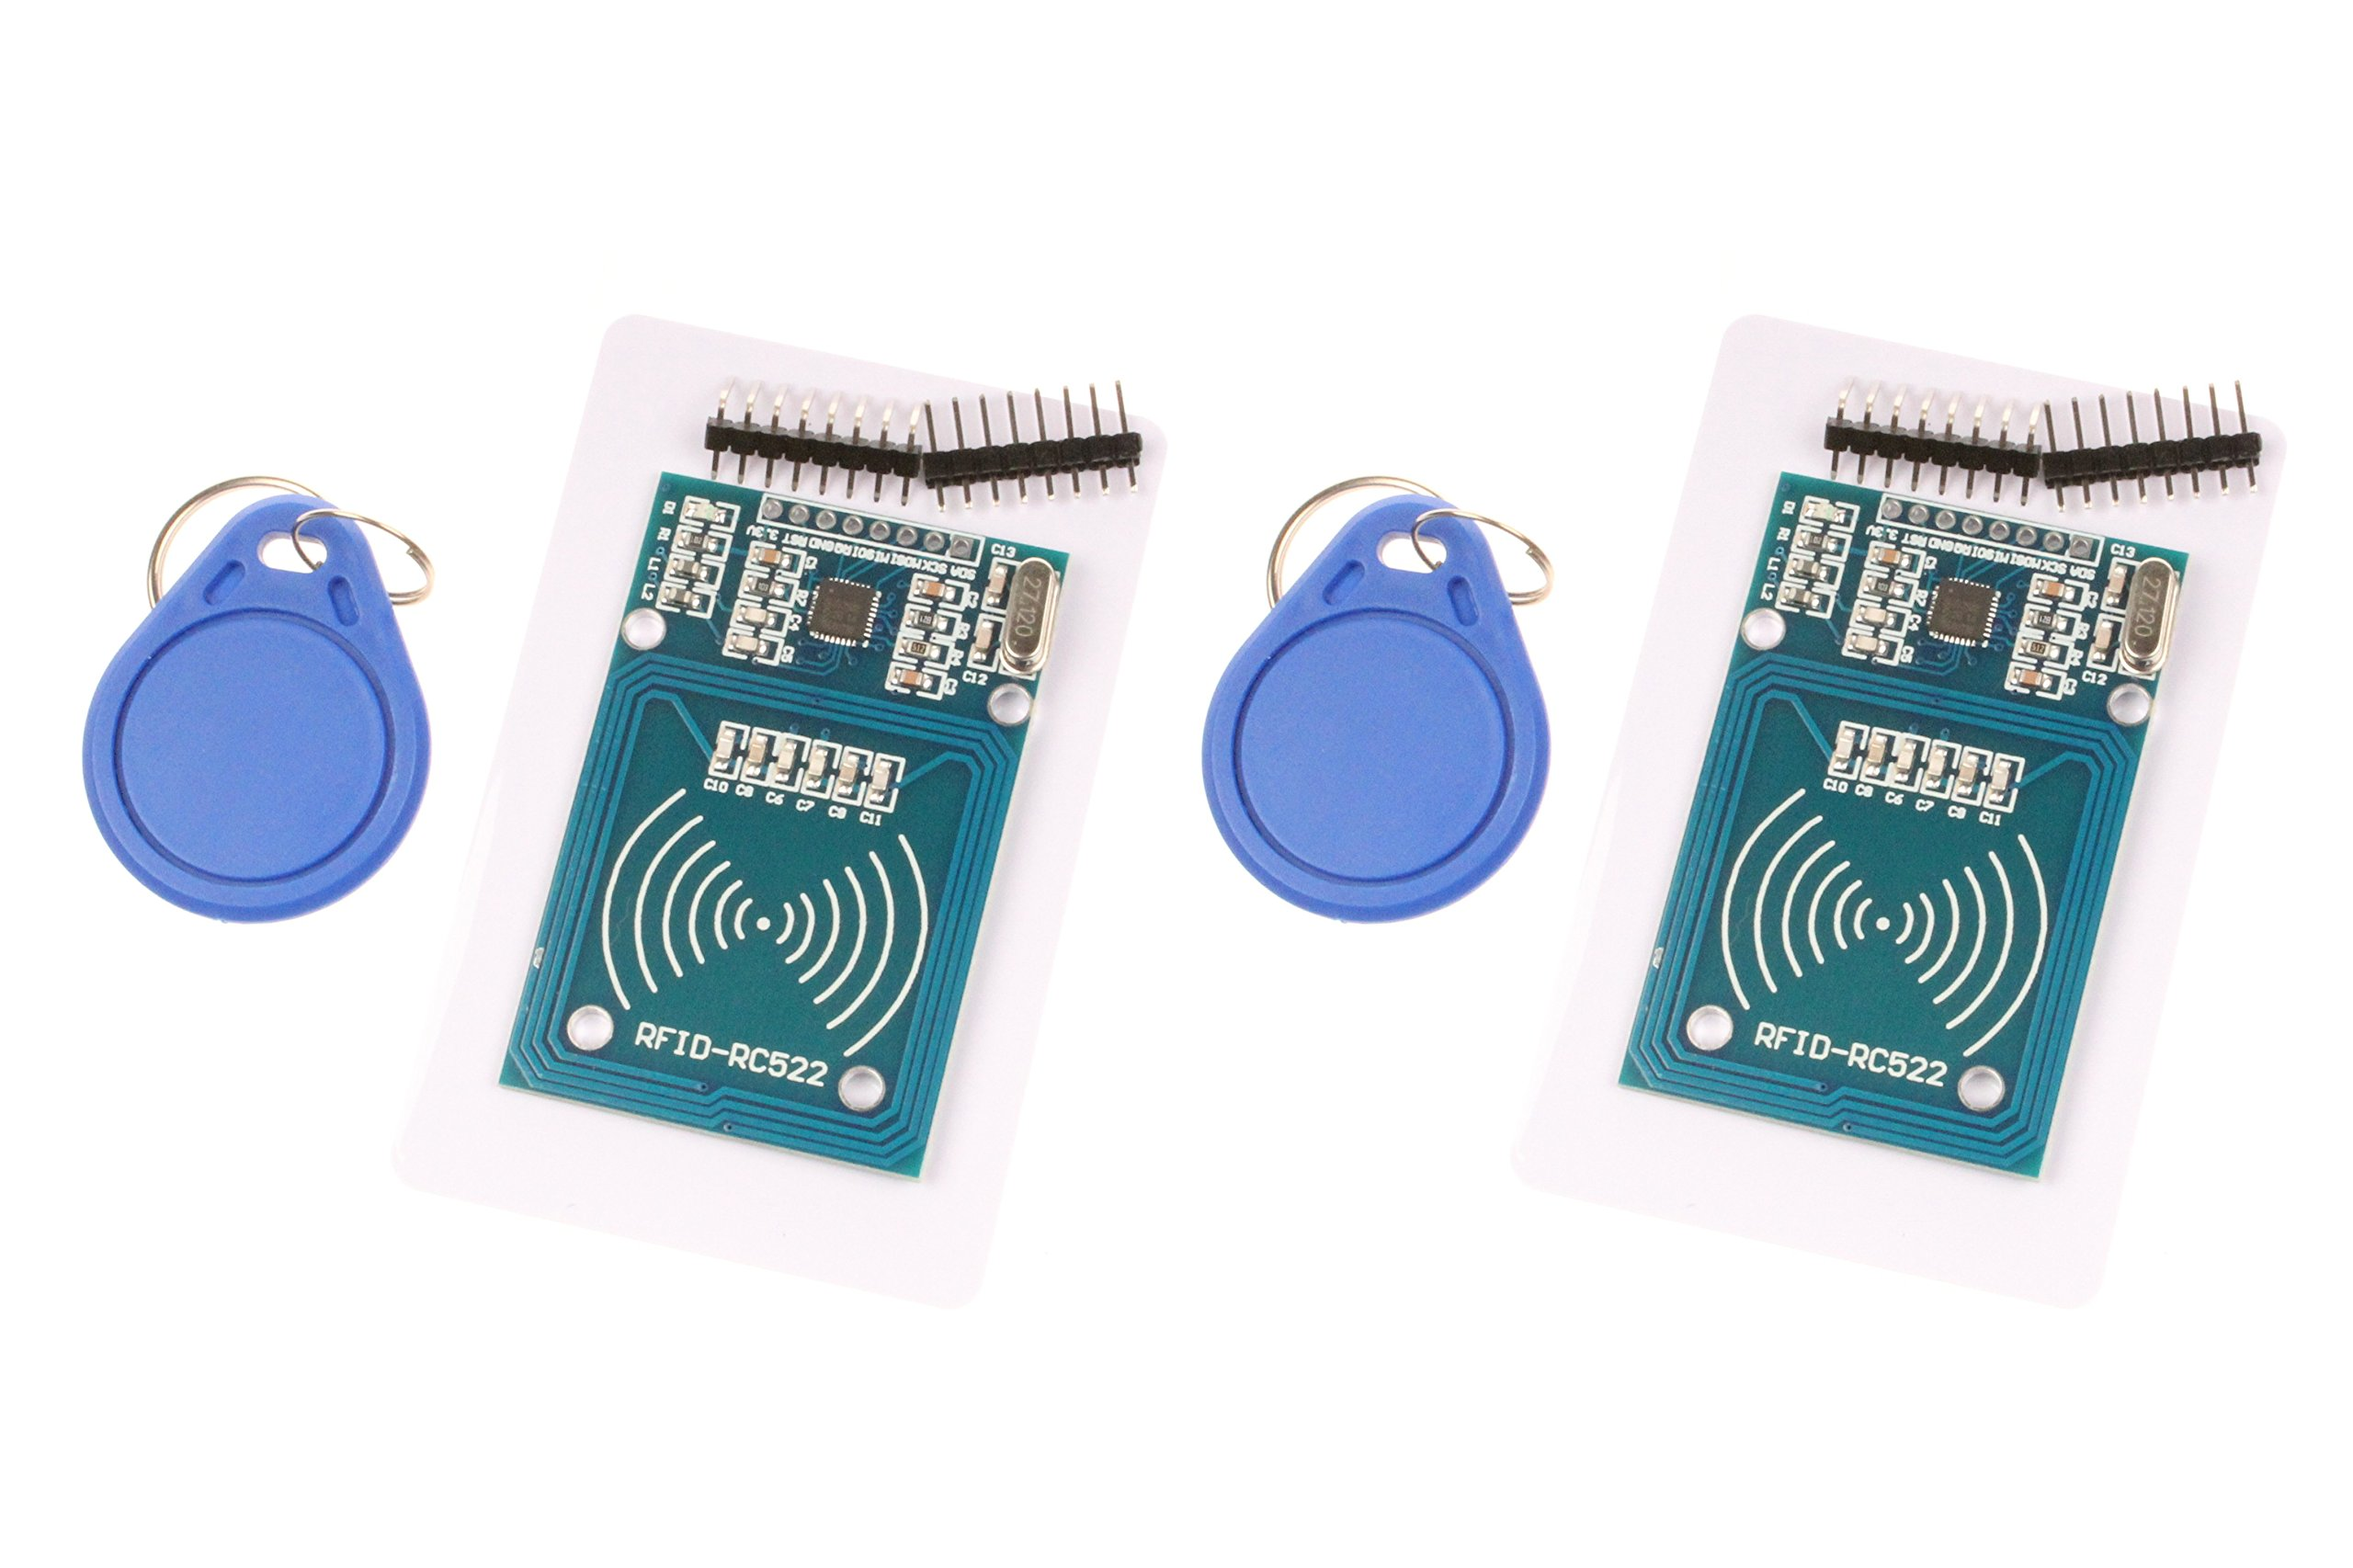 MFRC-522 RC522 RFID RF IC Card Inductive Module With S50 White Card and Key Ring for Arduino - 2 Sets by NOYITO